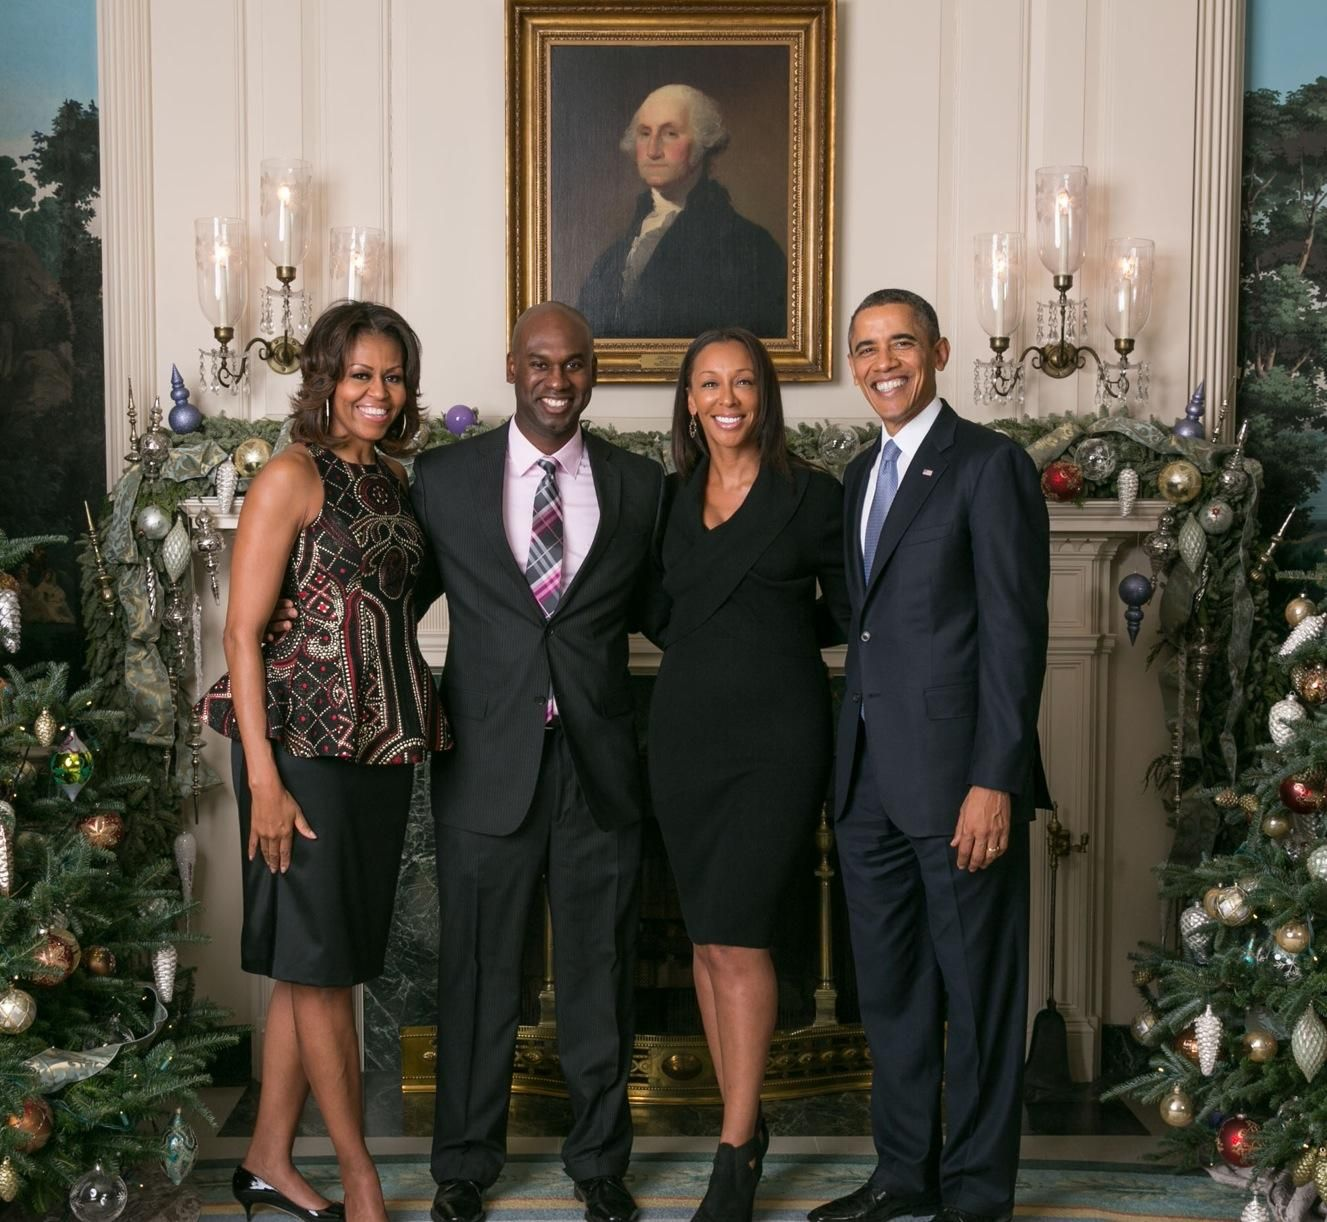 Dallas Dj Dede Mcguire Enjoys Christmas Time Visit With President And First Lady Michelle